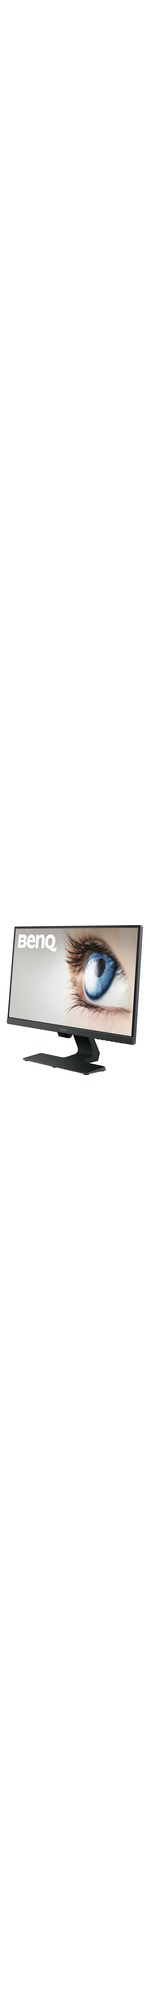 BenQ GW2480 23.8And#34; Full HD LED LCD Monitor - 16:9 - Black